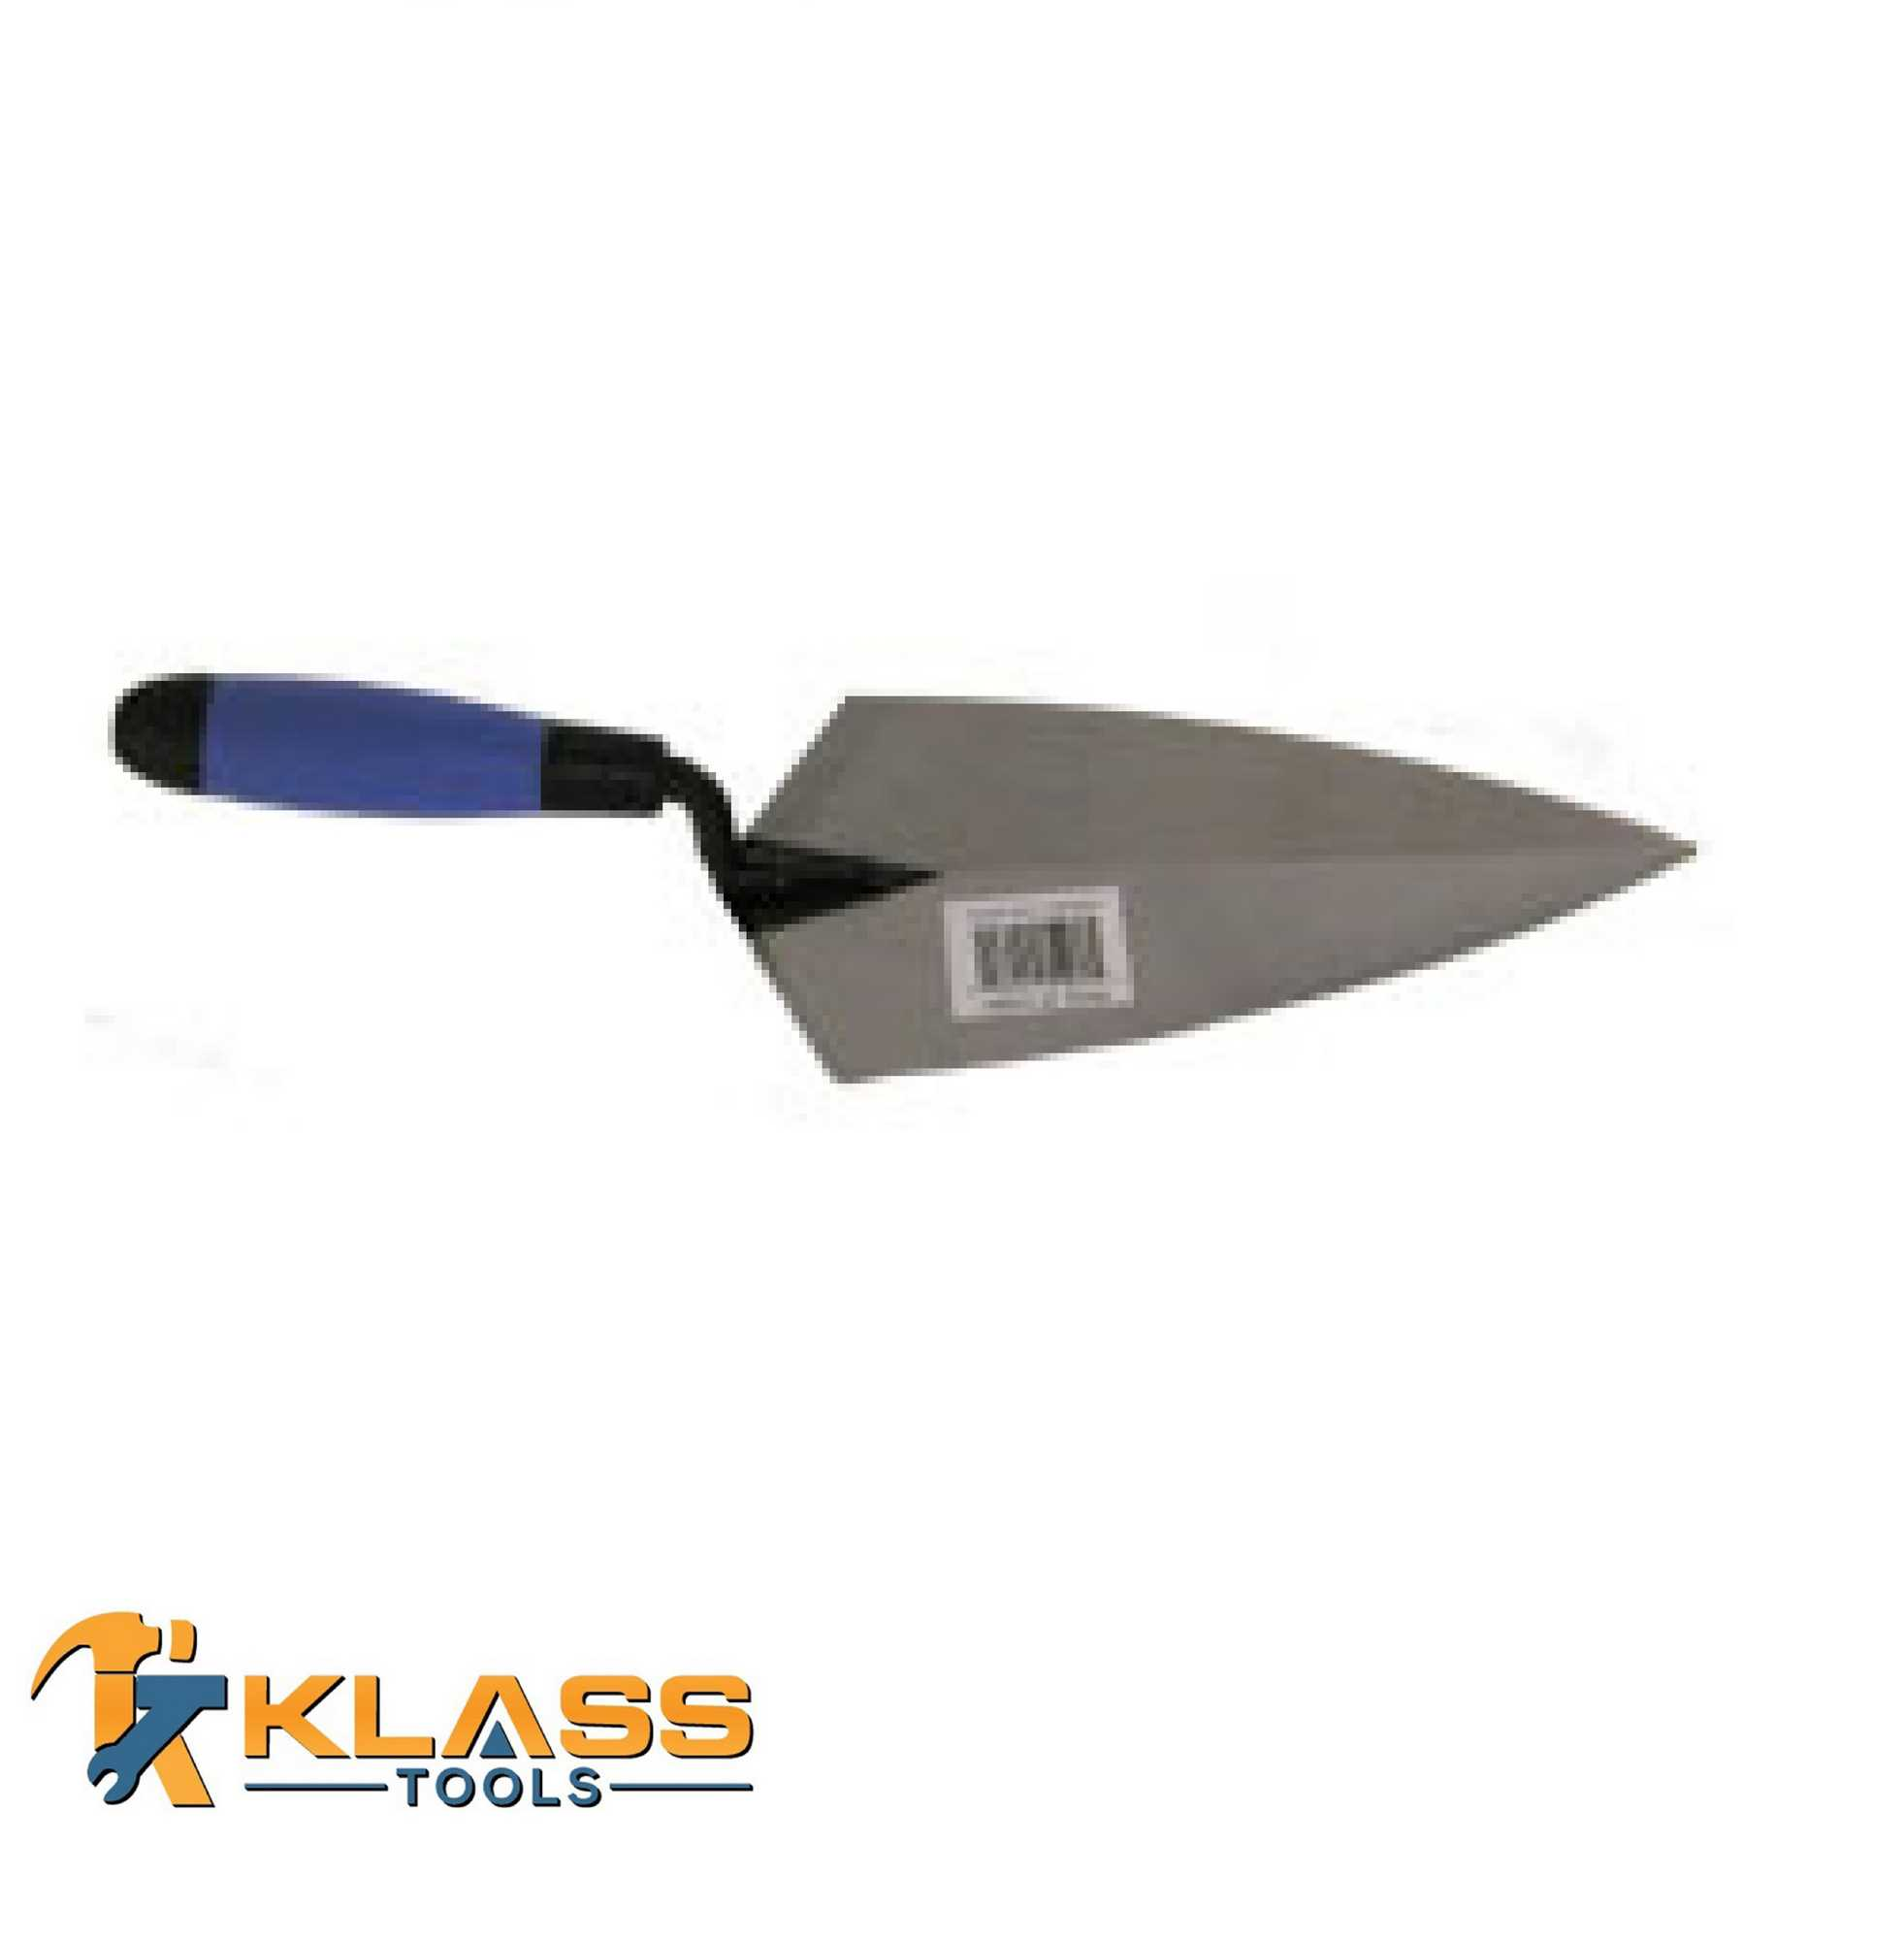 5-1/2'X11'Point Trowel TPR HDL